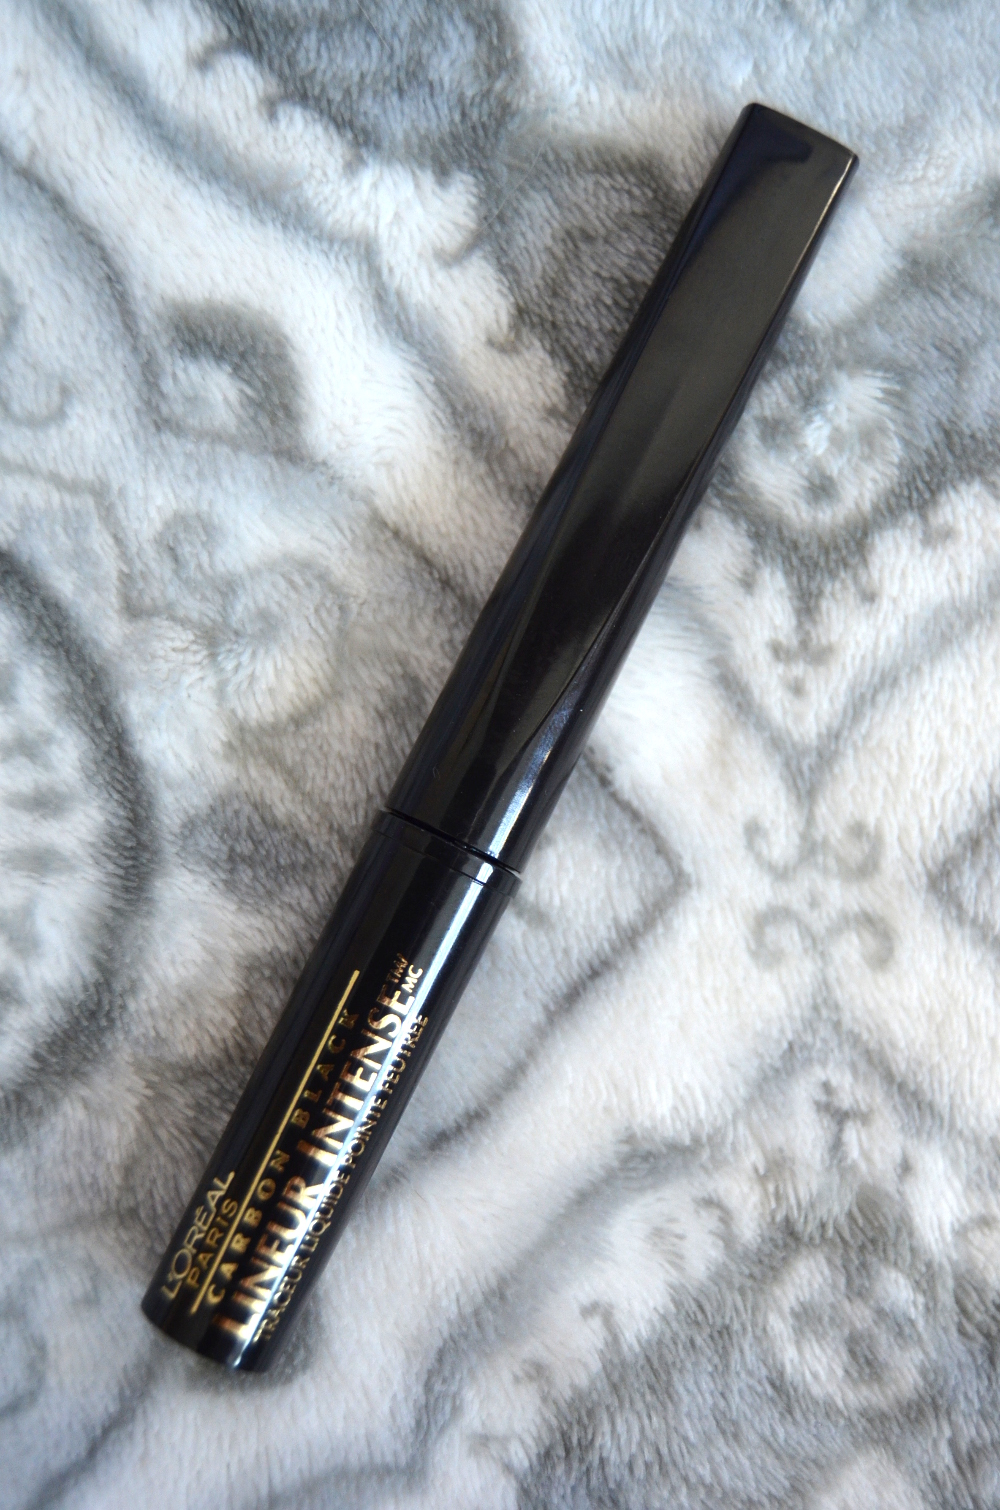 L'oreal lineur intense black felt tip eyeliner for cat eyes